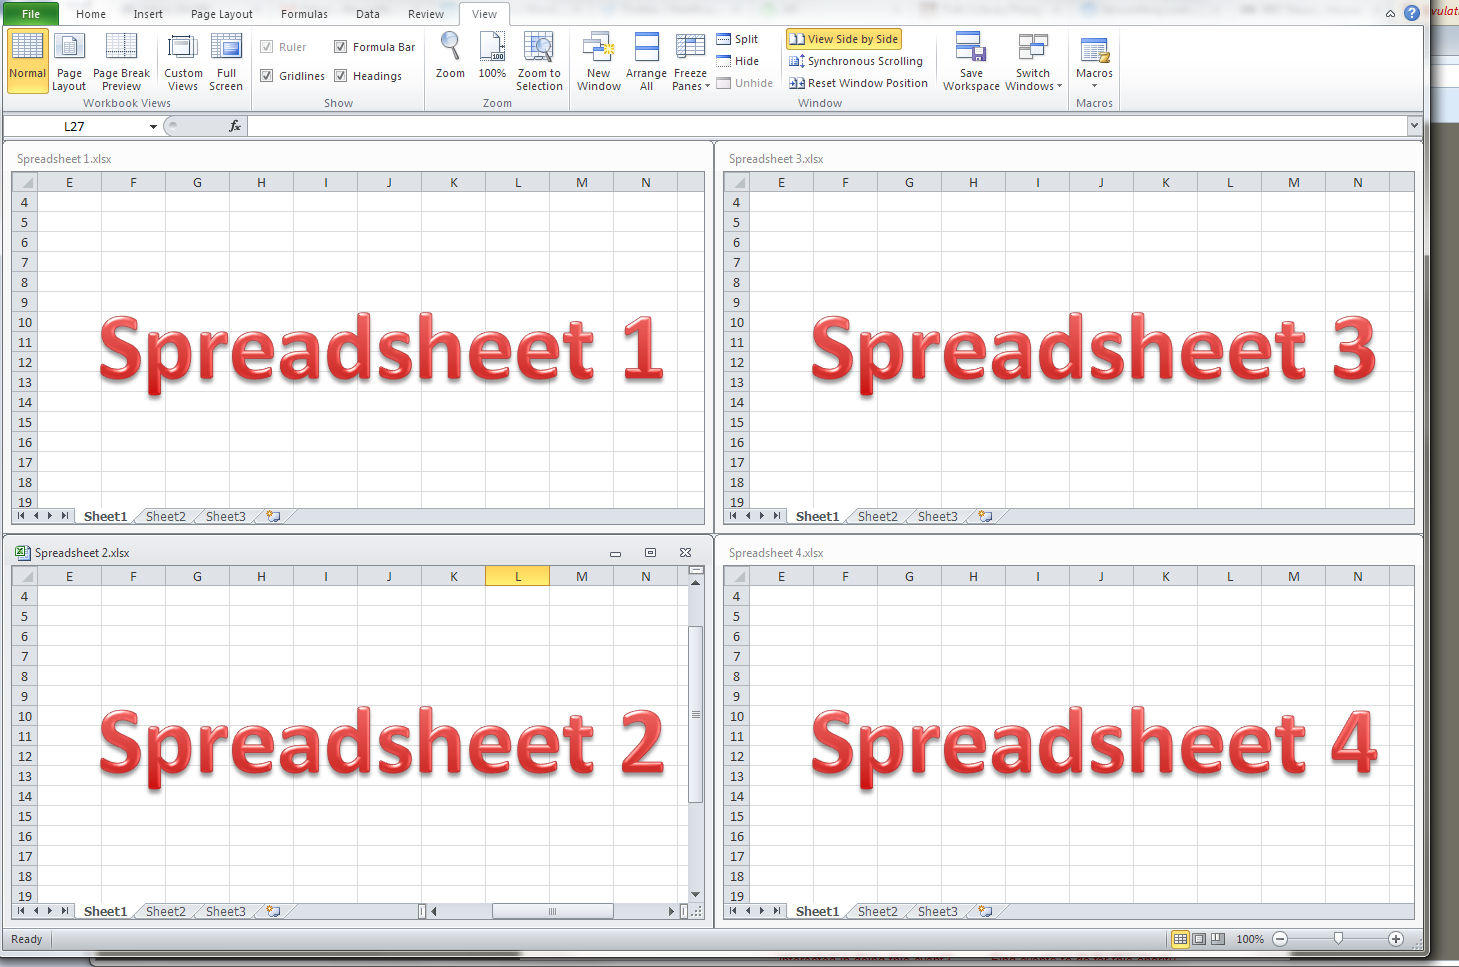 Spreadsheet Workbook Printable Spreadsheet Spreadsheet Workbook Spreadsheet Workbook Tabs